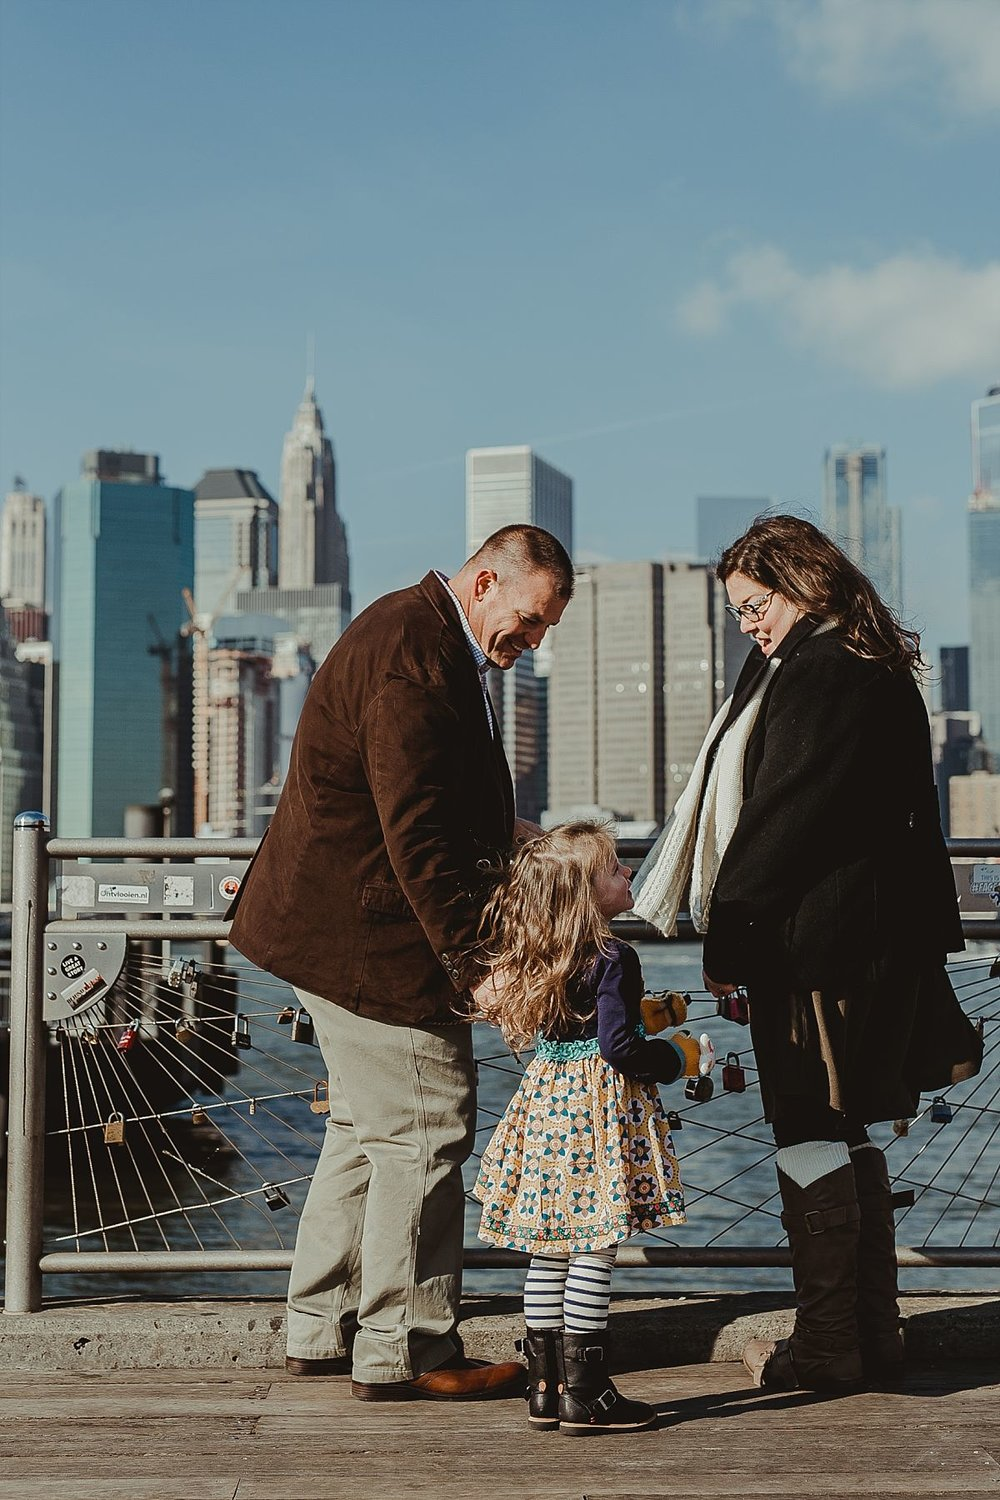 mom, dad and daughter at dumbo pier looking at the nyc skyline and the lockets. photo by krystil mcdowall photography